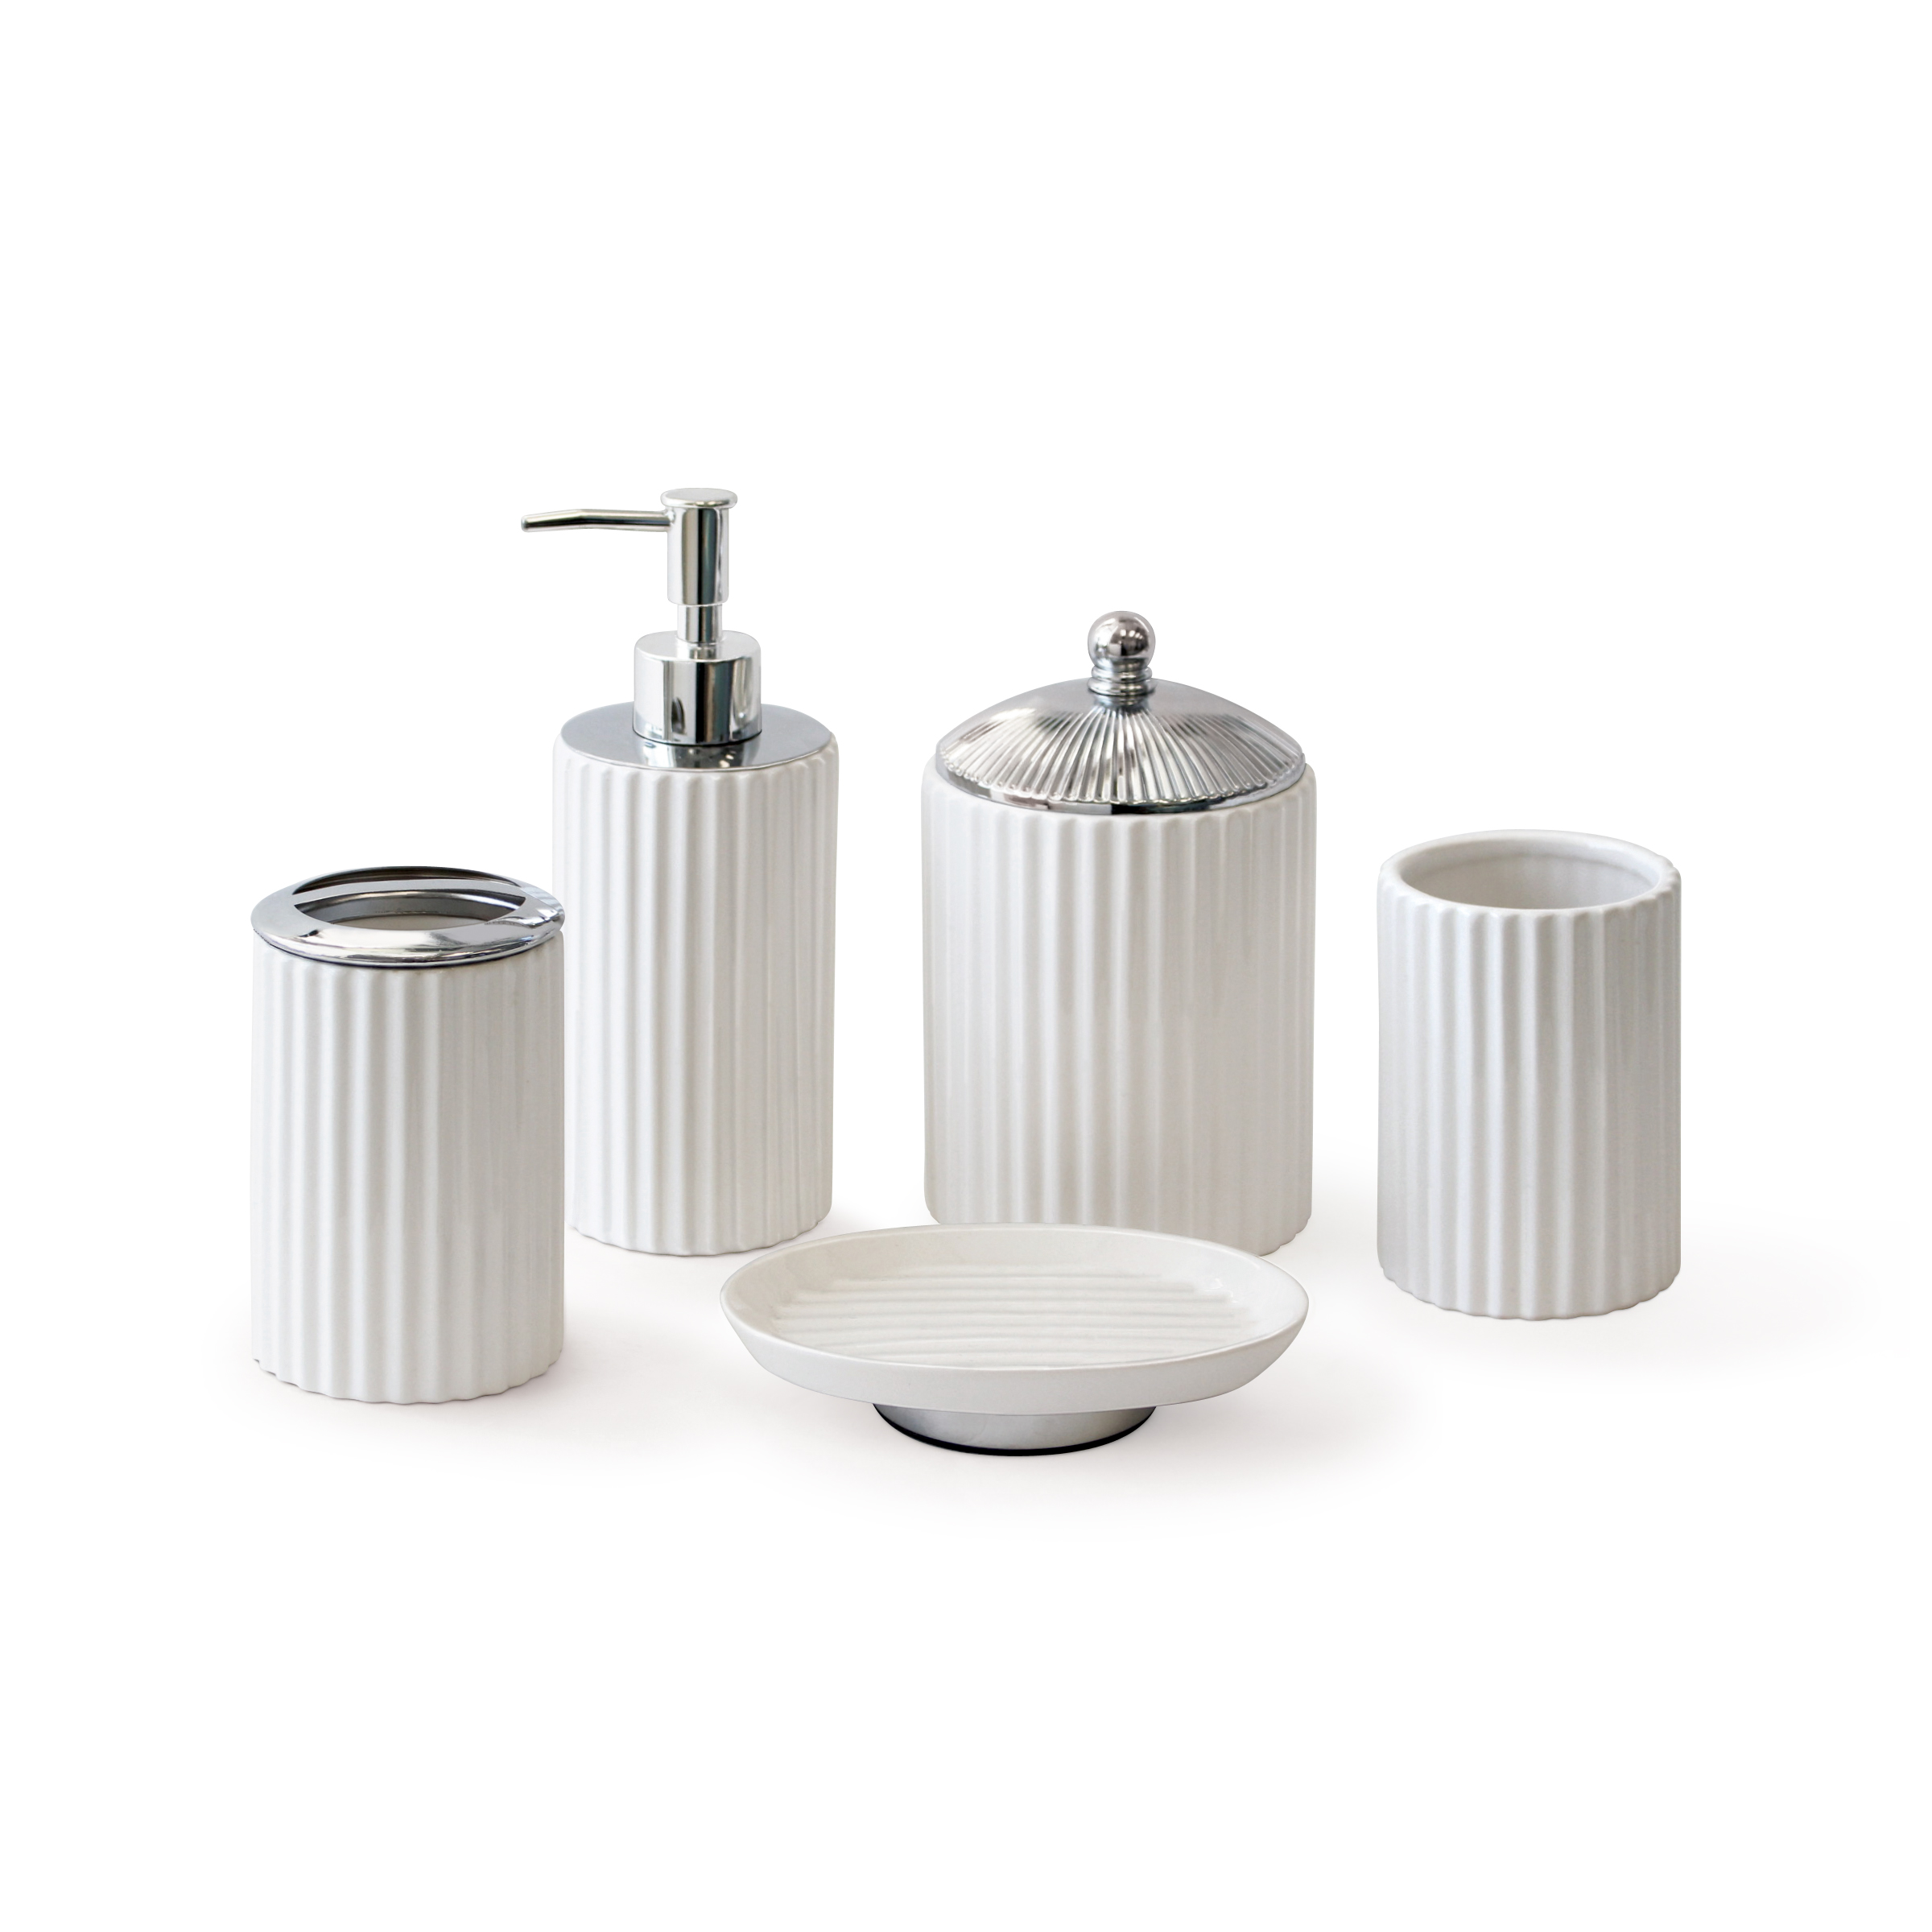 Accessory Sets - Ceramic, Marble, Resin and Metal. Accessory sets to make your bathroom stand out.